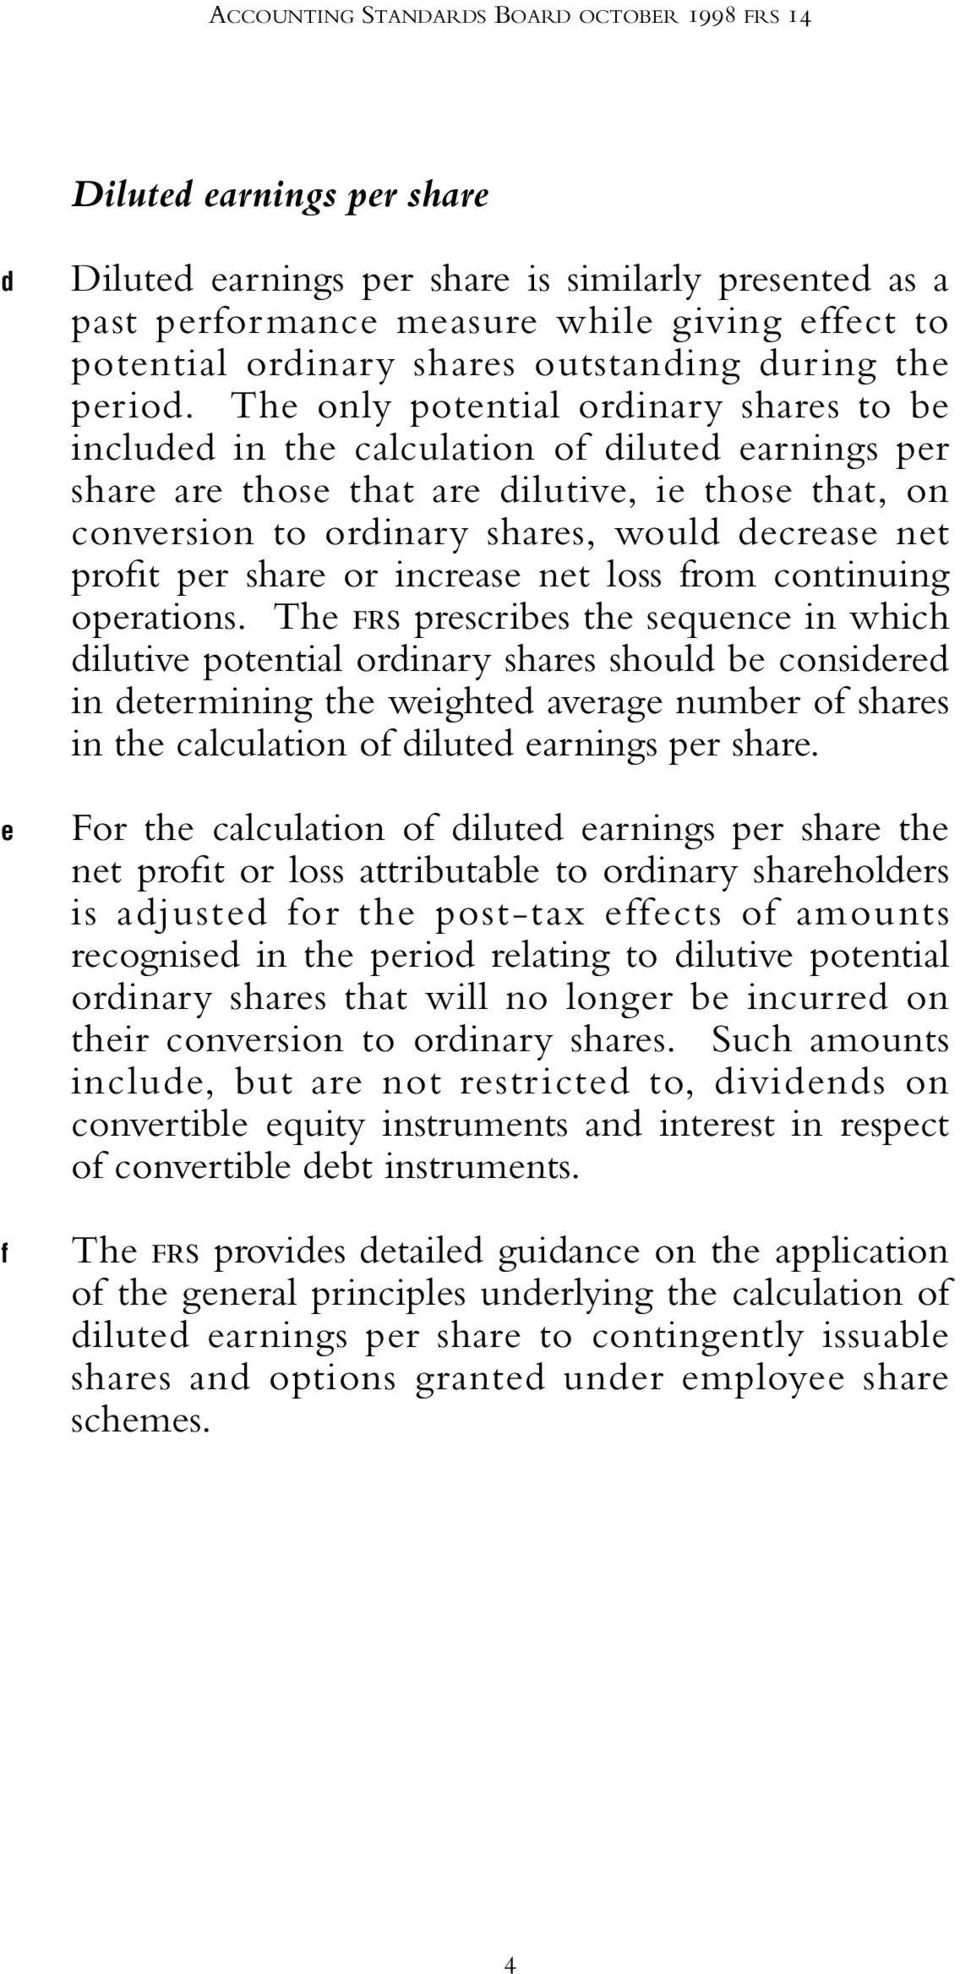 The only potential ordinary shares to be included in the calculation of diluted earnings per share are those that are dilutive, ie those that, on conversion to ordinary shares, would decrease net